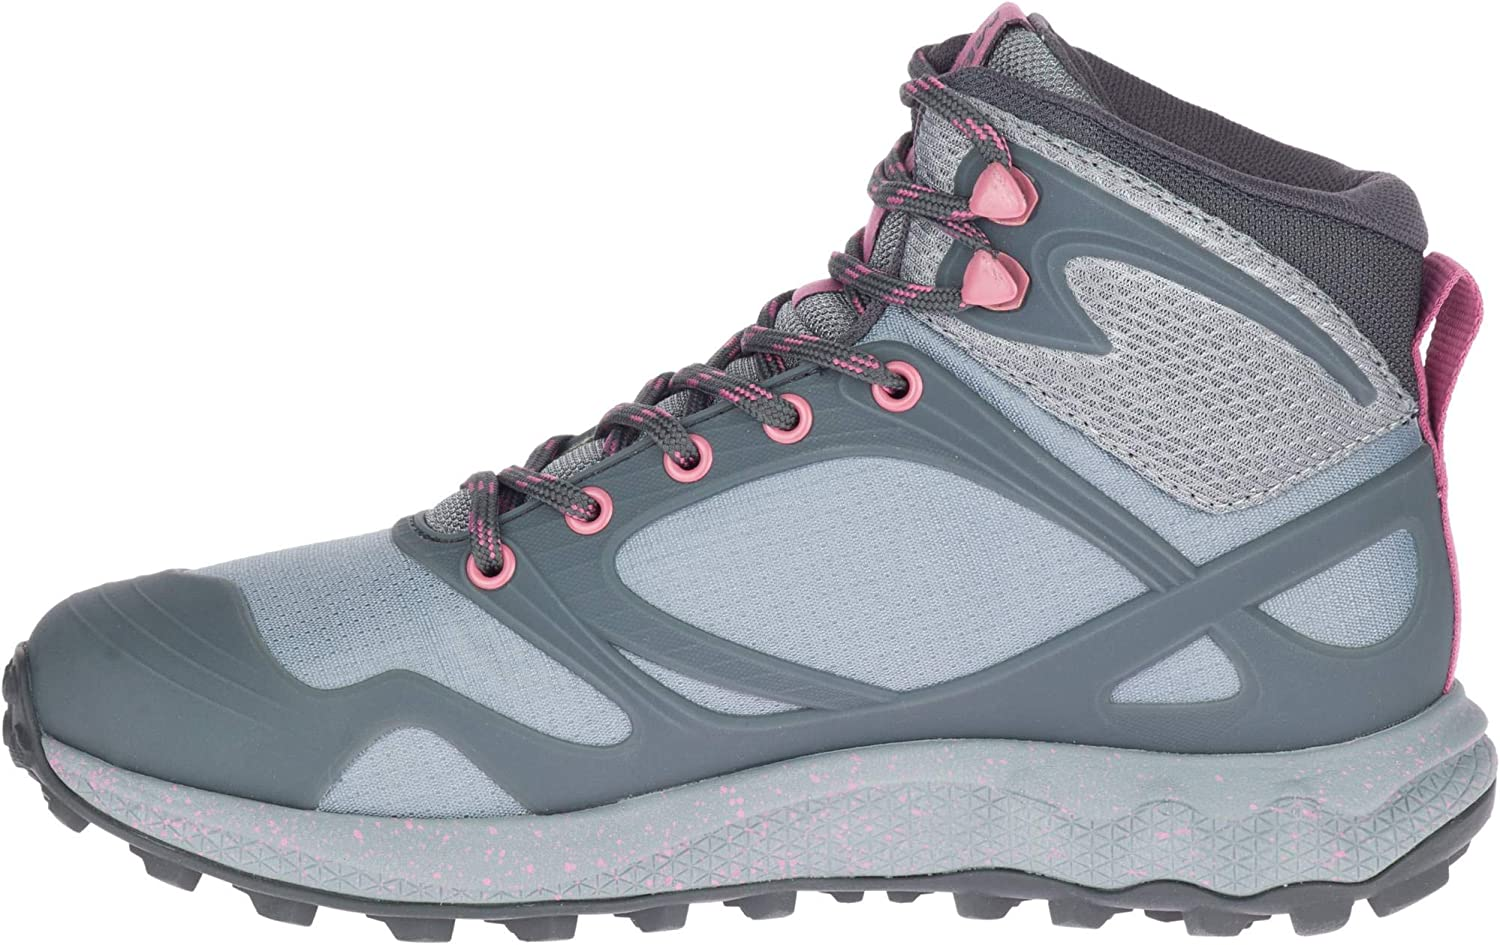 Merrell Women's Altalight Mid Waterproof Hiking Shoe